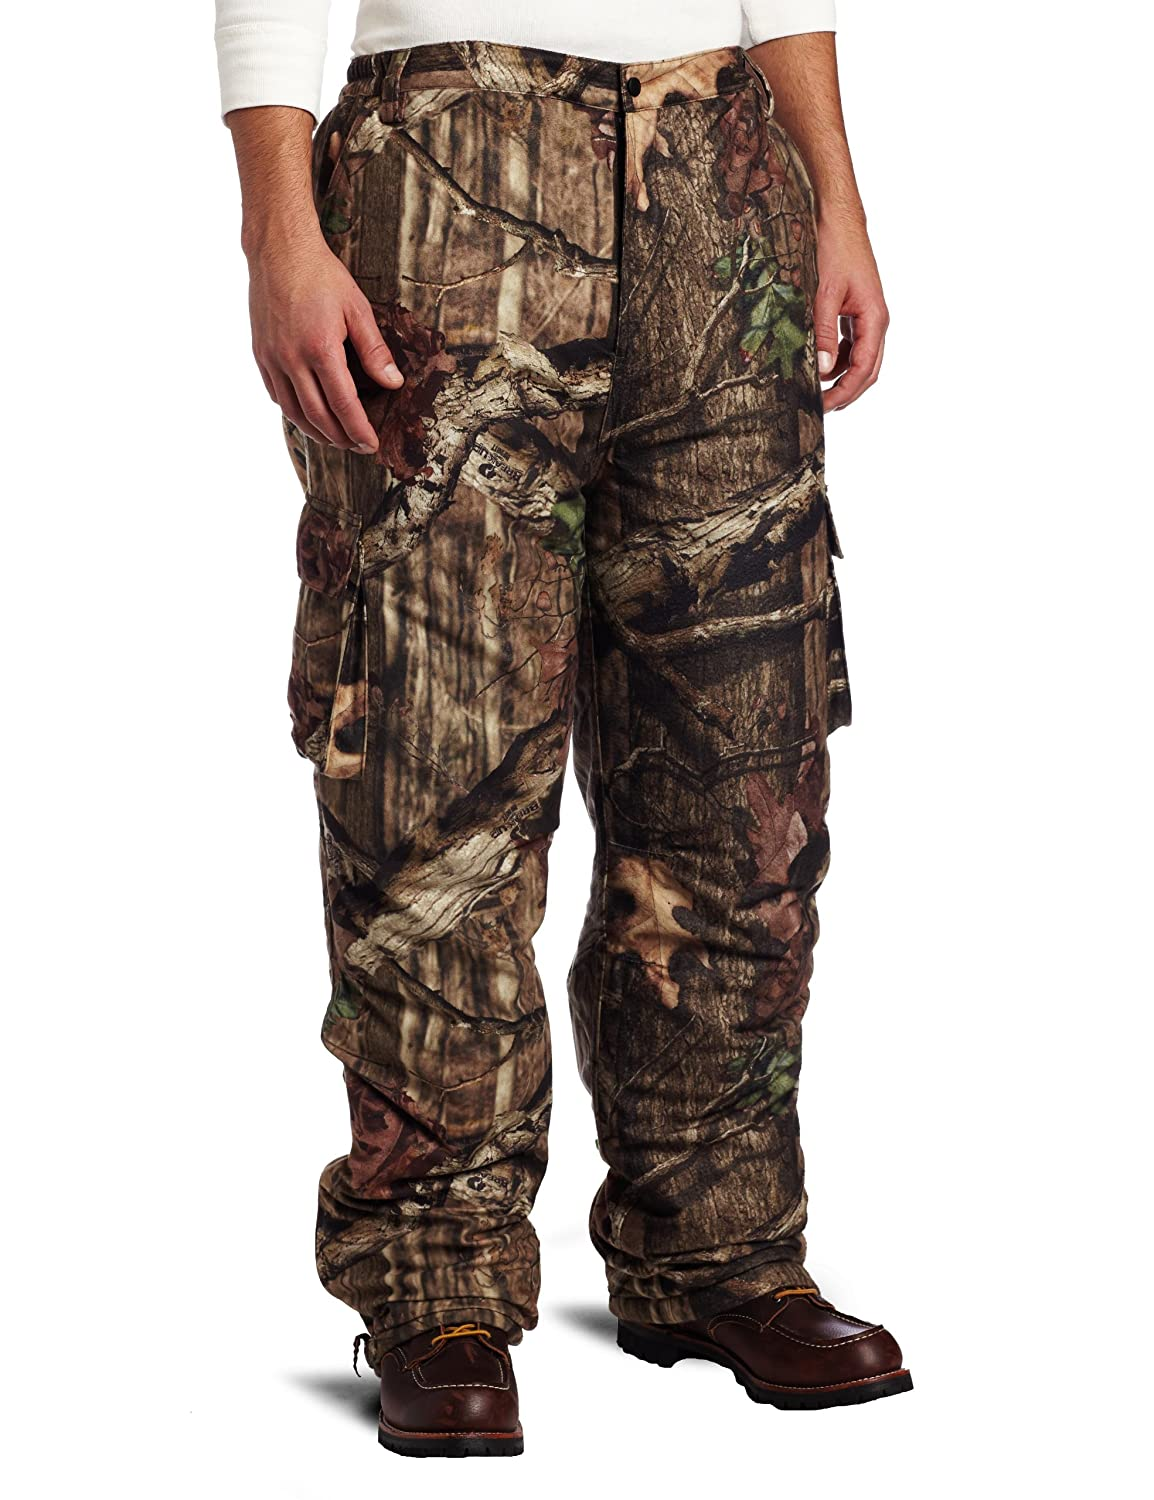 Yukon Gear Men's Insulated Pants (Mossy Oak Infinity, Medium)